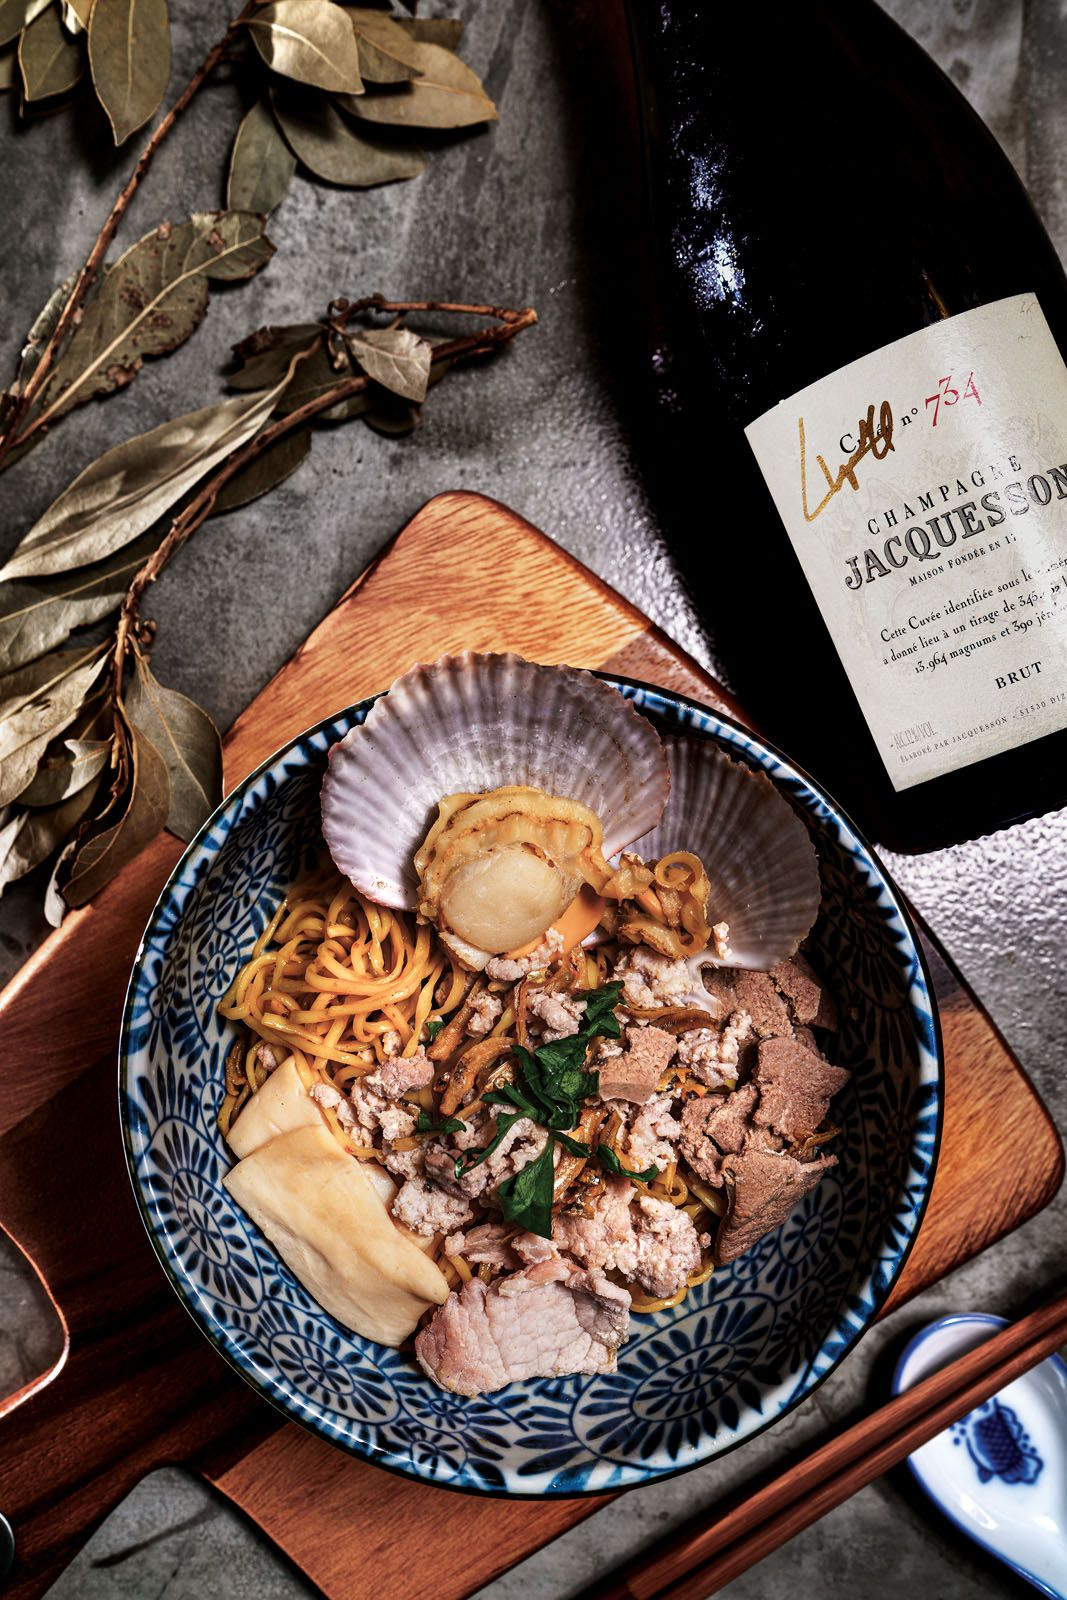 Crisp champagne with bright citrus notes helps lift the savouriness of flavourful dishes, but pick one that balances the vinegar used in dishes like bak chor mee